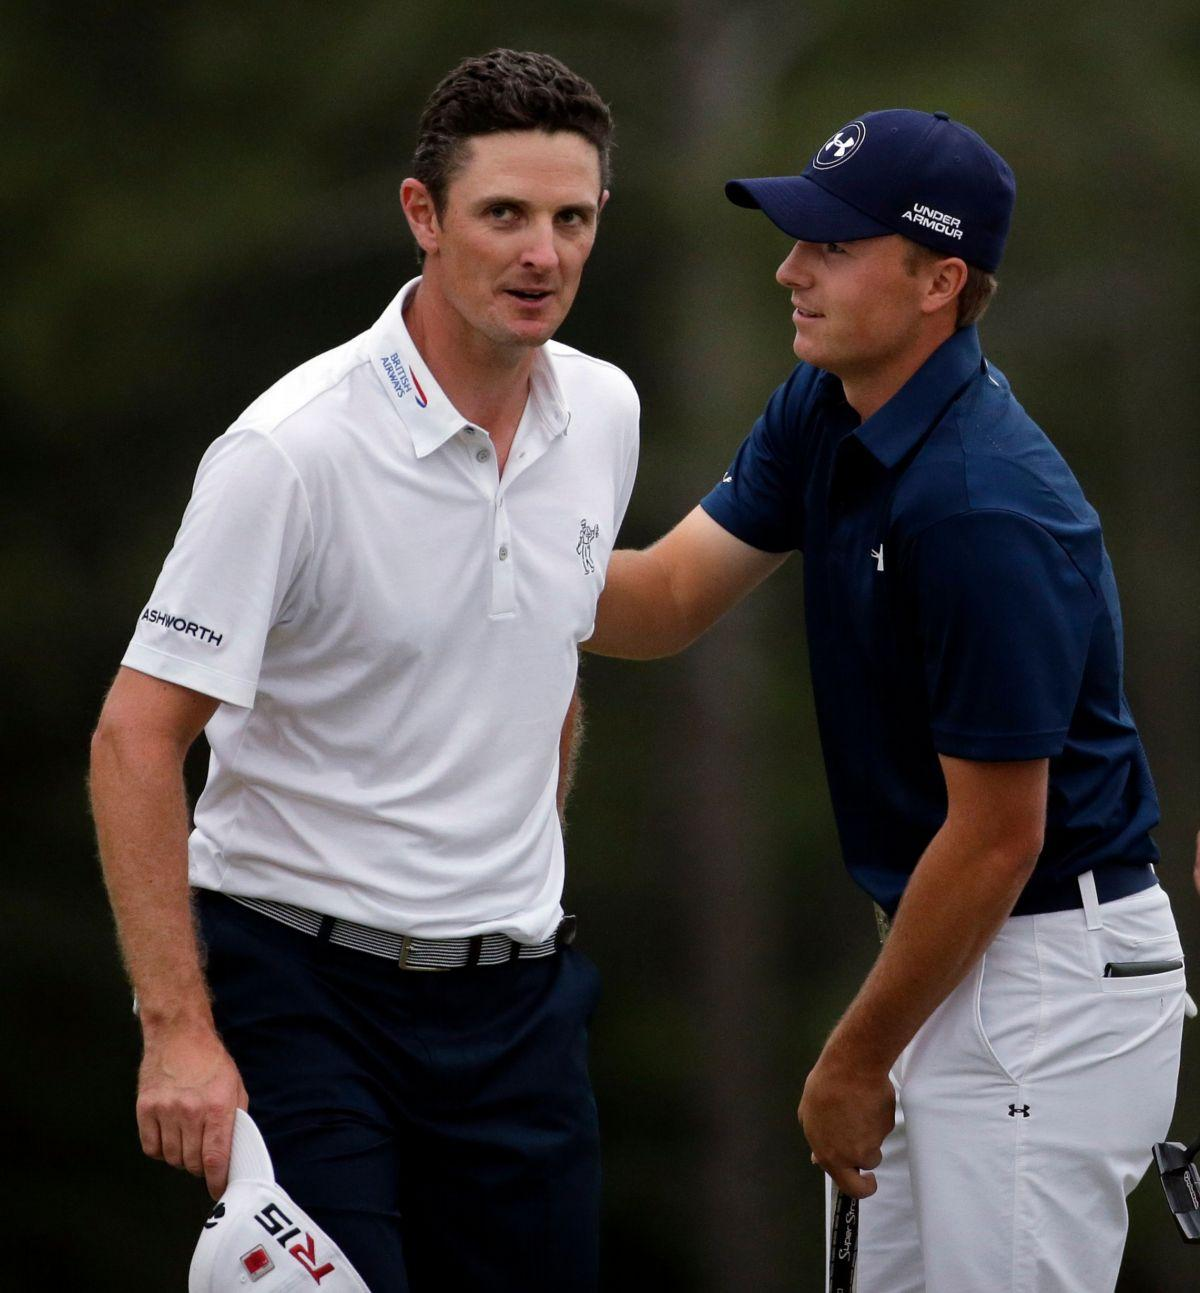 Justin Rose, left, and Jordan Spieth